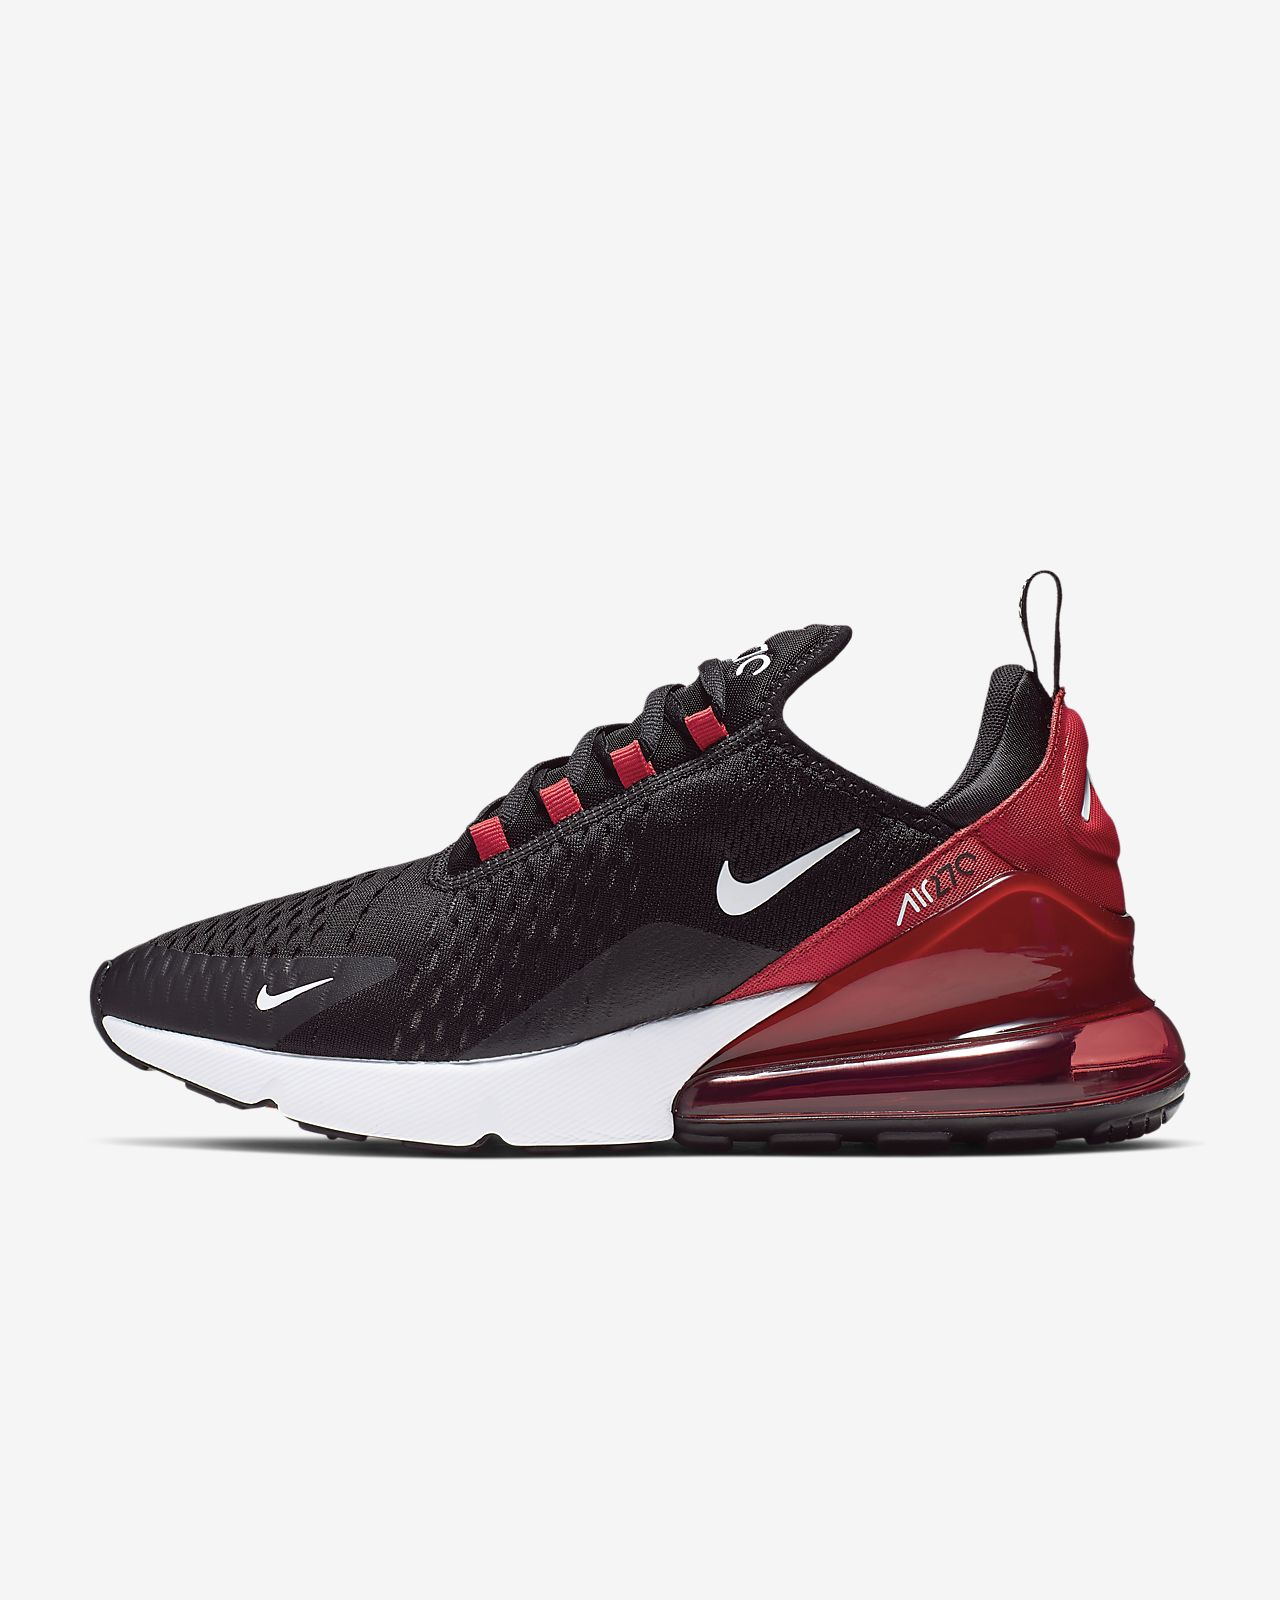 meet cf5f2 dd3b4 Men s Shoe. Nike Air Max 270